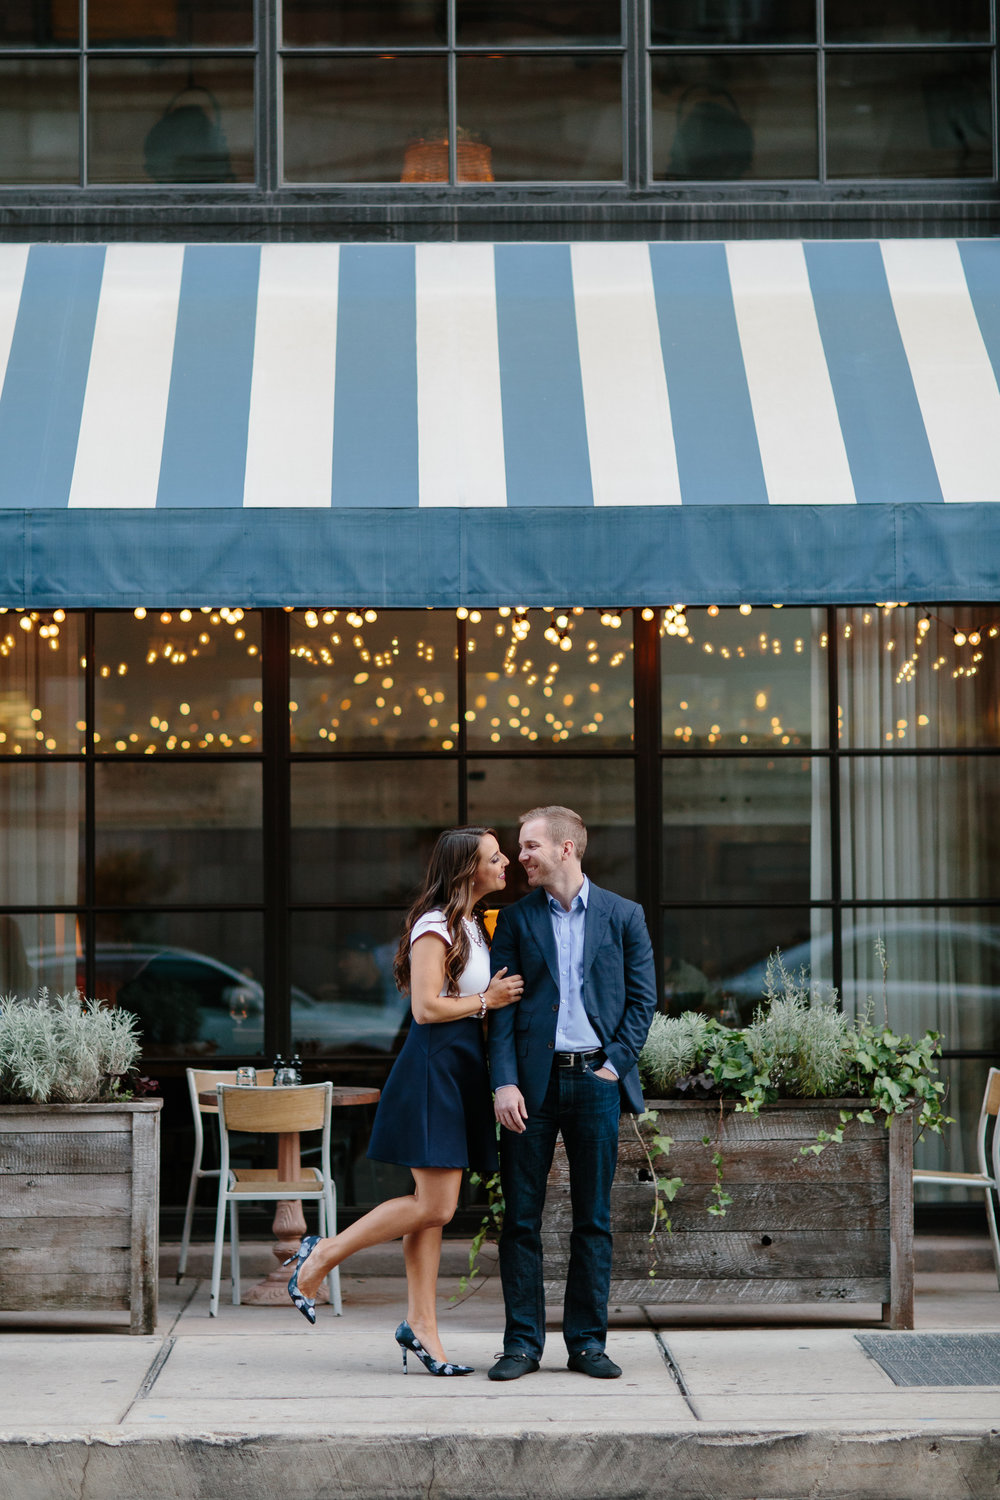 Nicodem Creative-Lotzer Engagement-West Loop Chicago-11.jpg